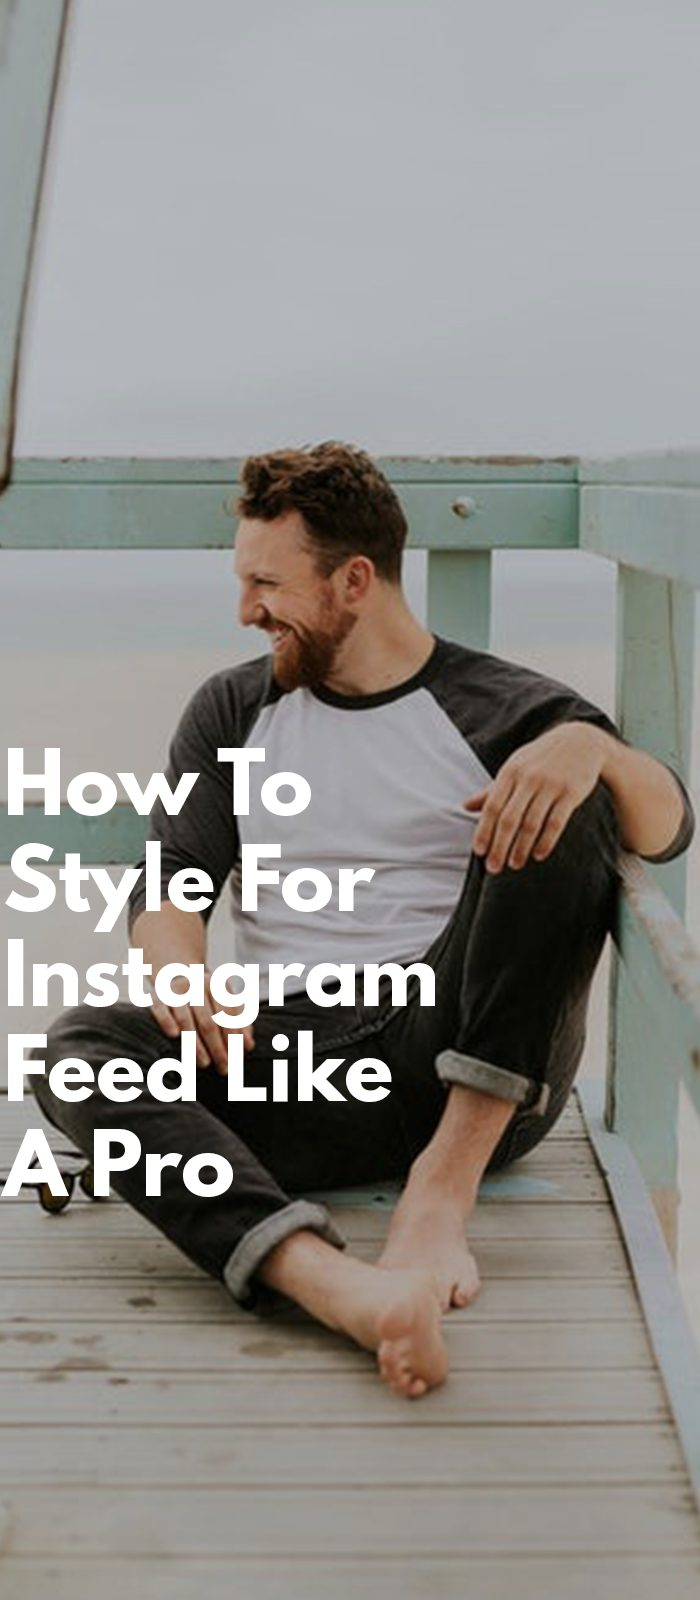 How To Style For Instagram Feed Like A Pro